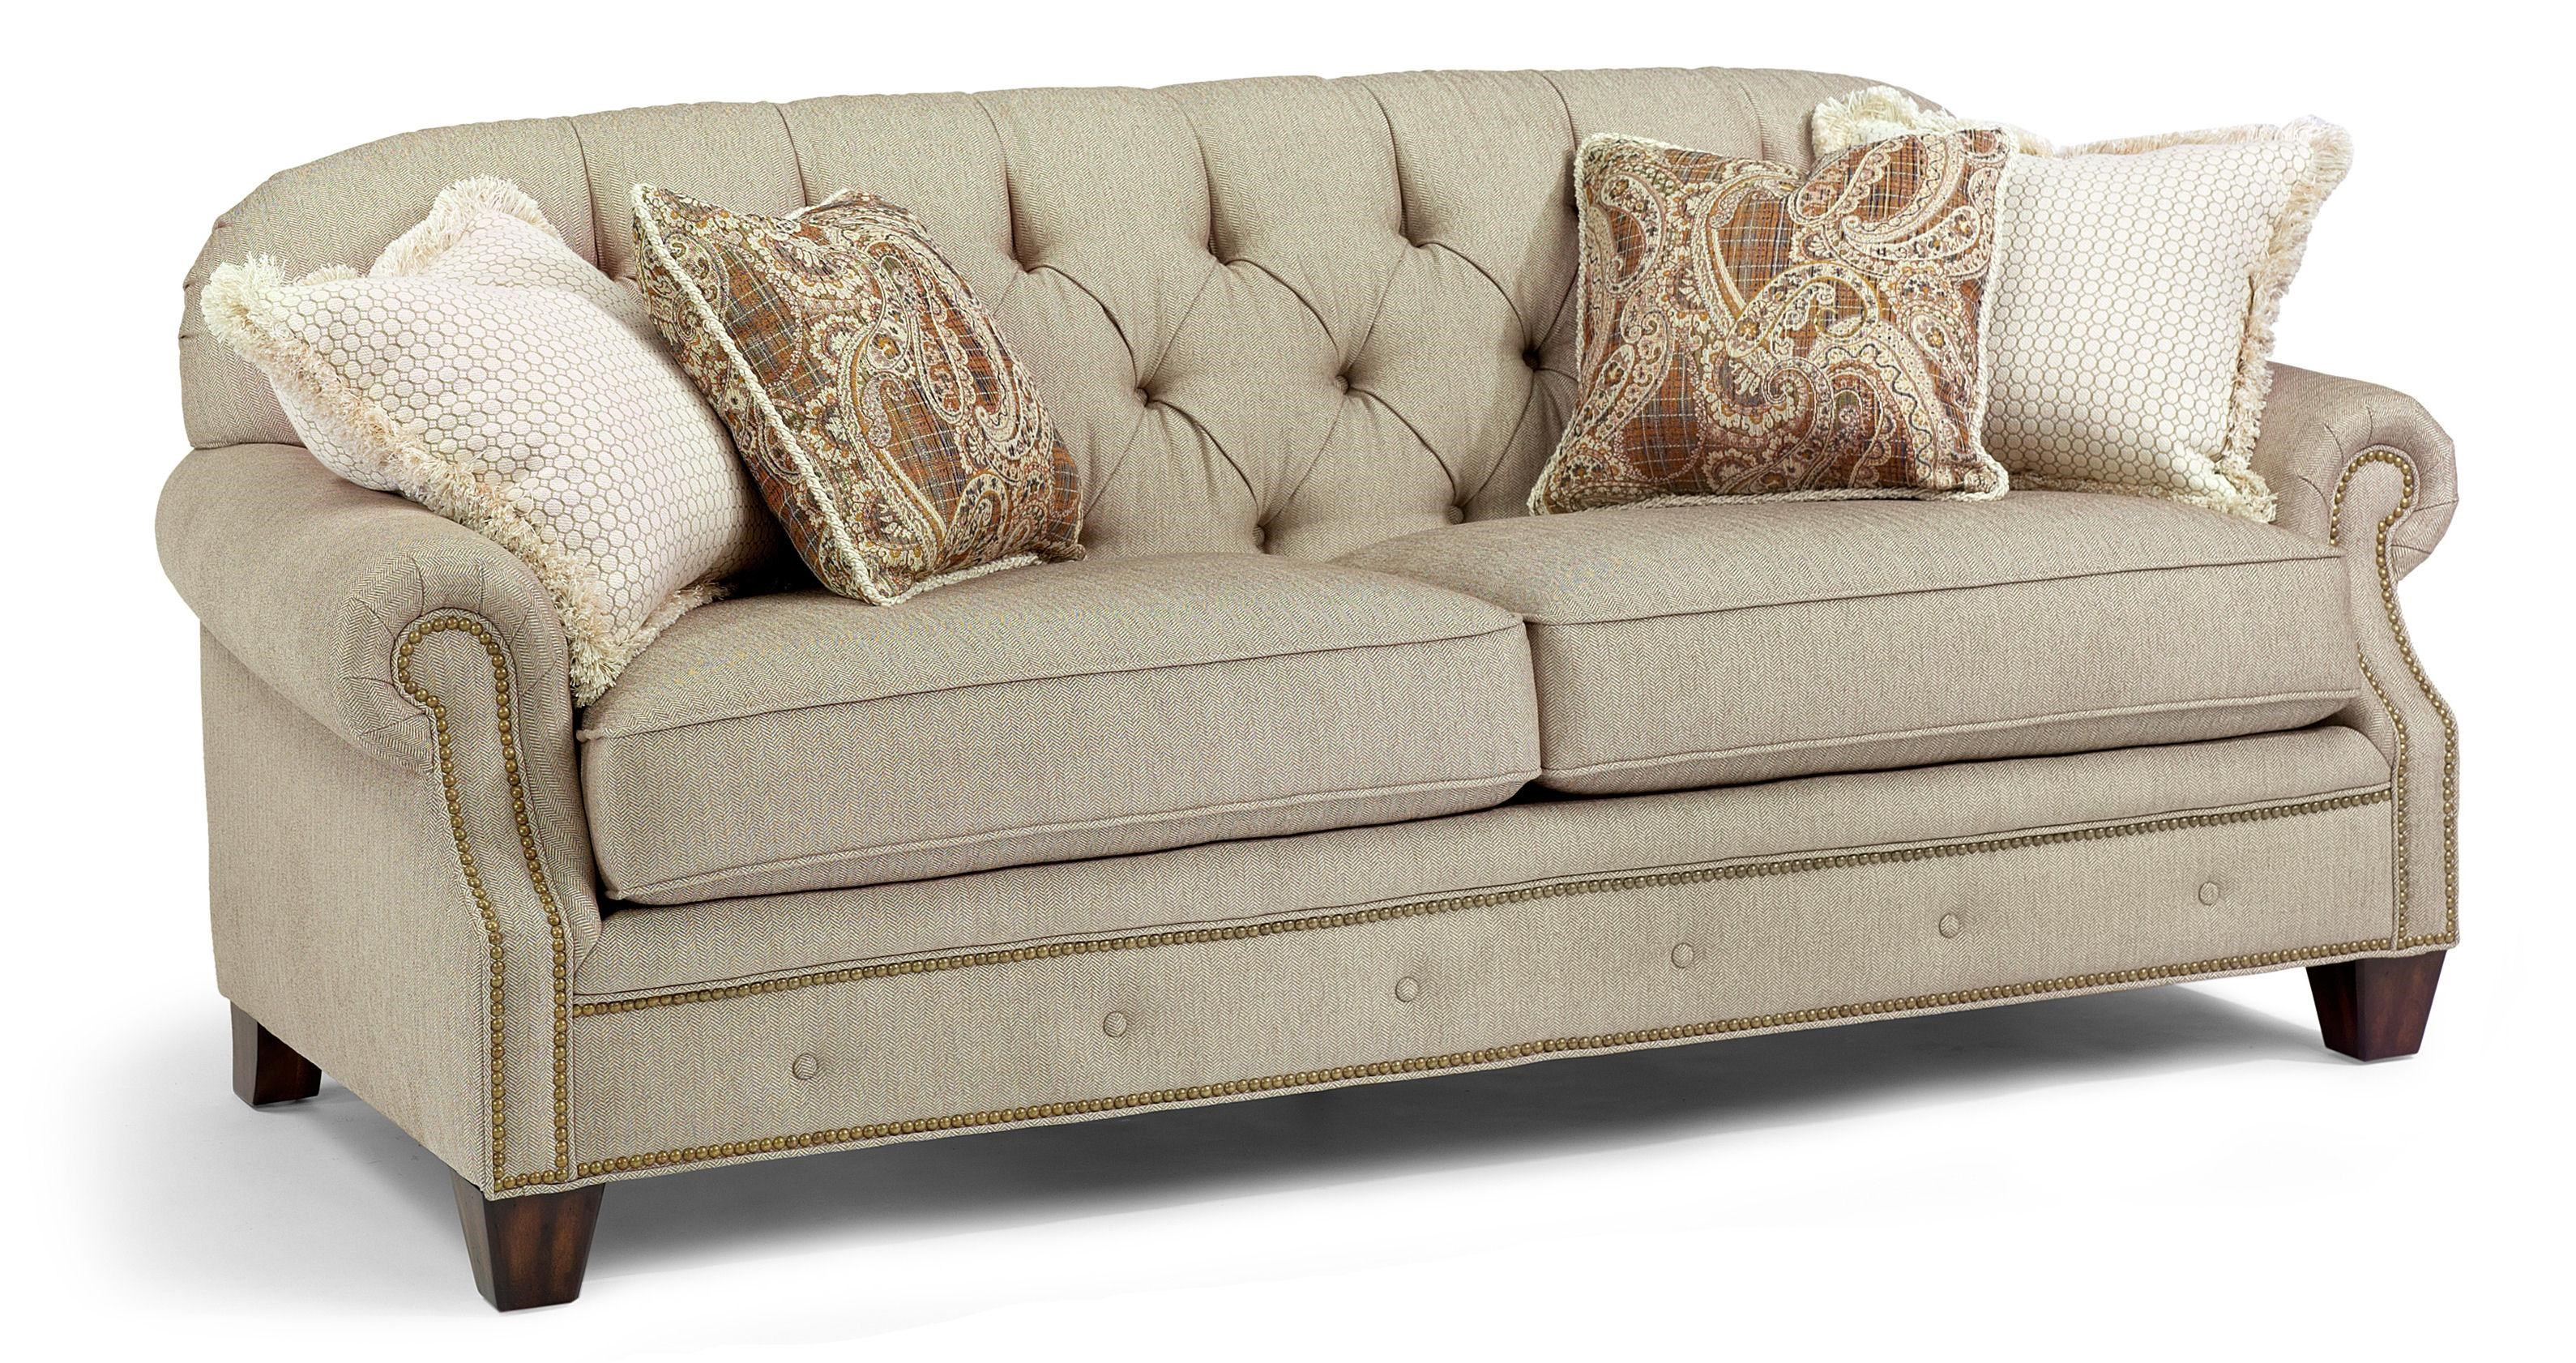 flexsteel champion sofa with rolled arms and nailheads